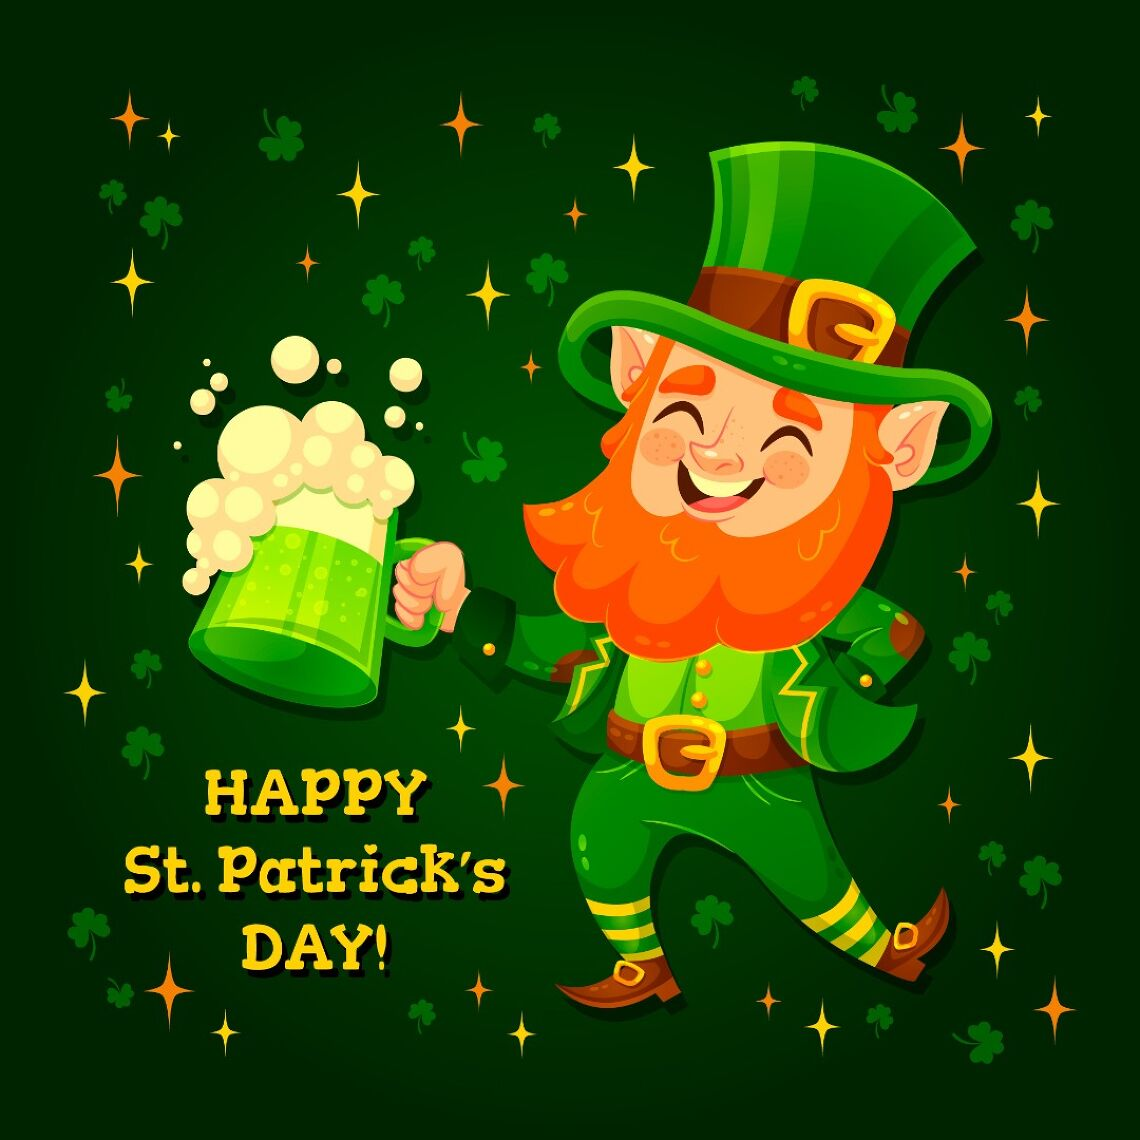 This St. Patrick's Day, EAT GREEN and save green🍀 Image